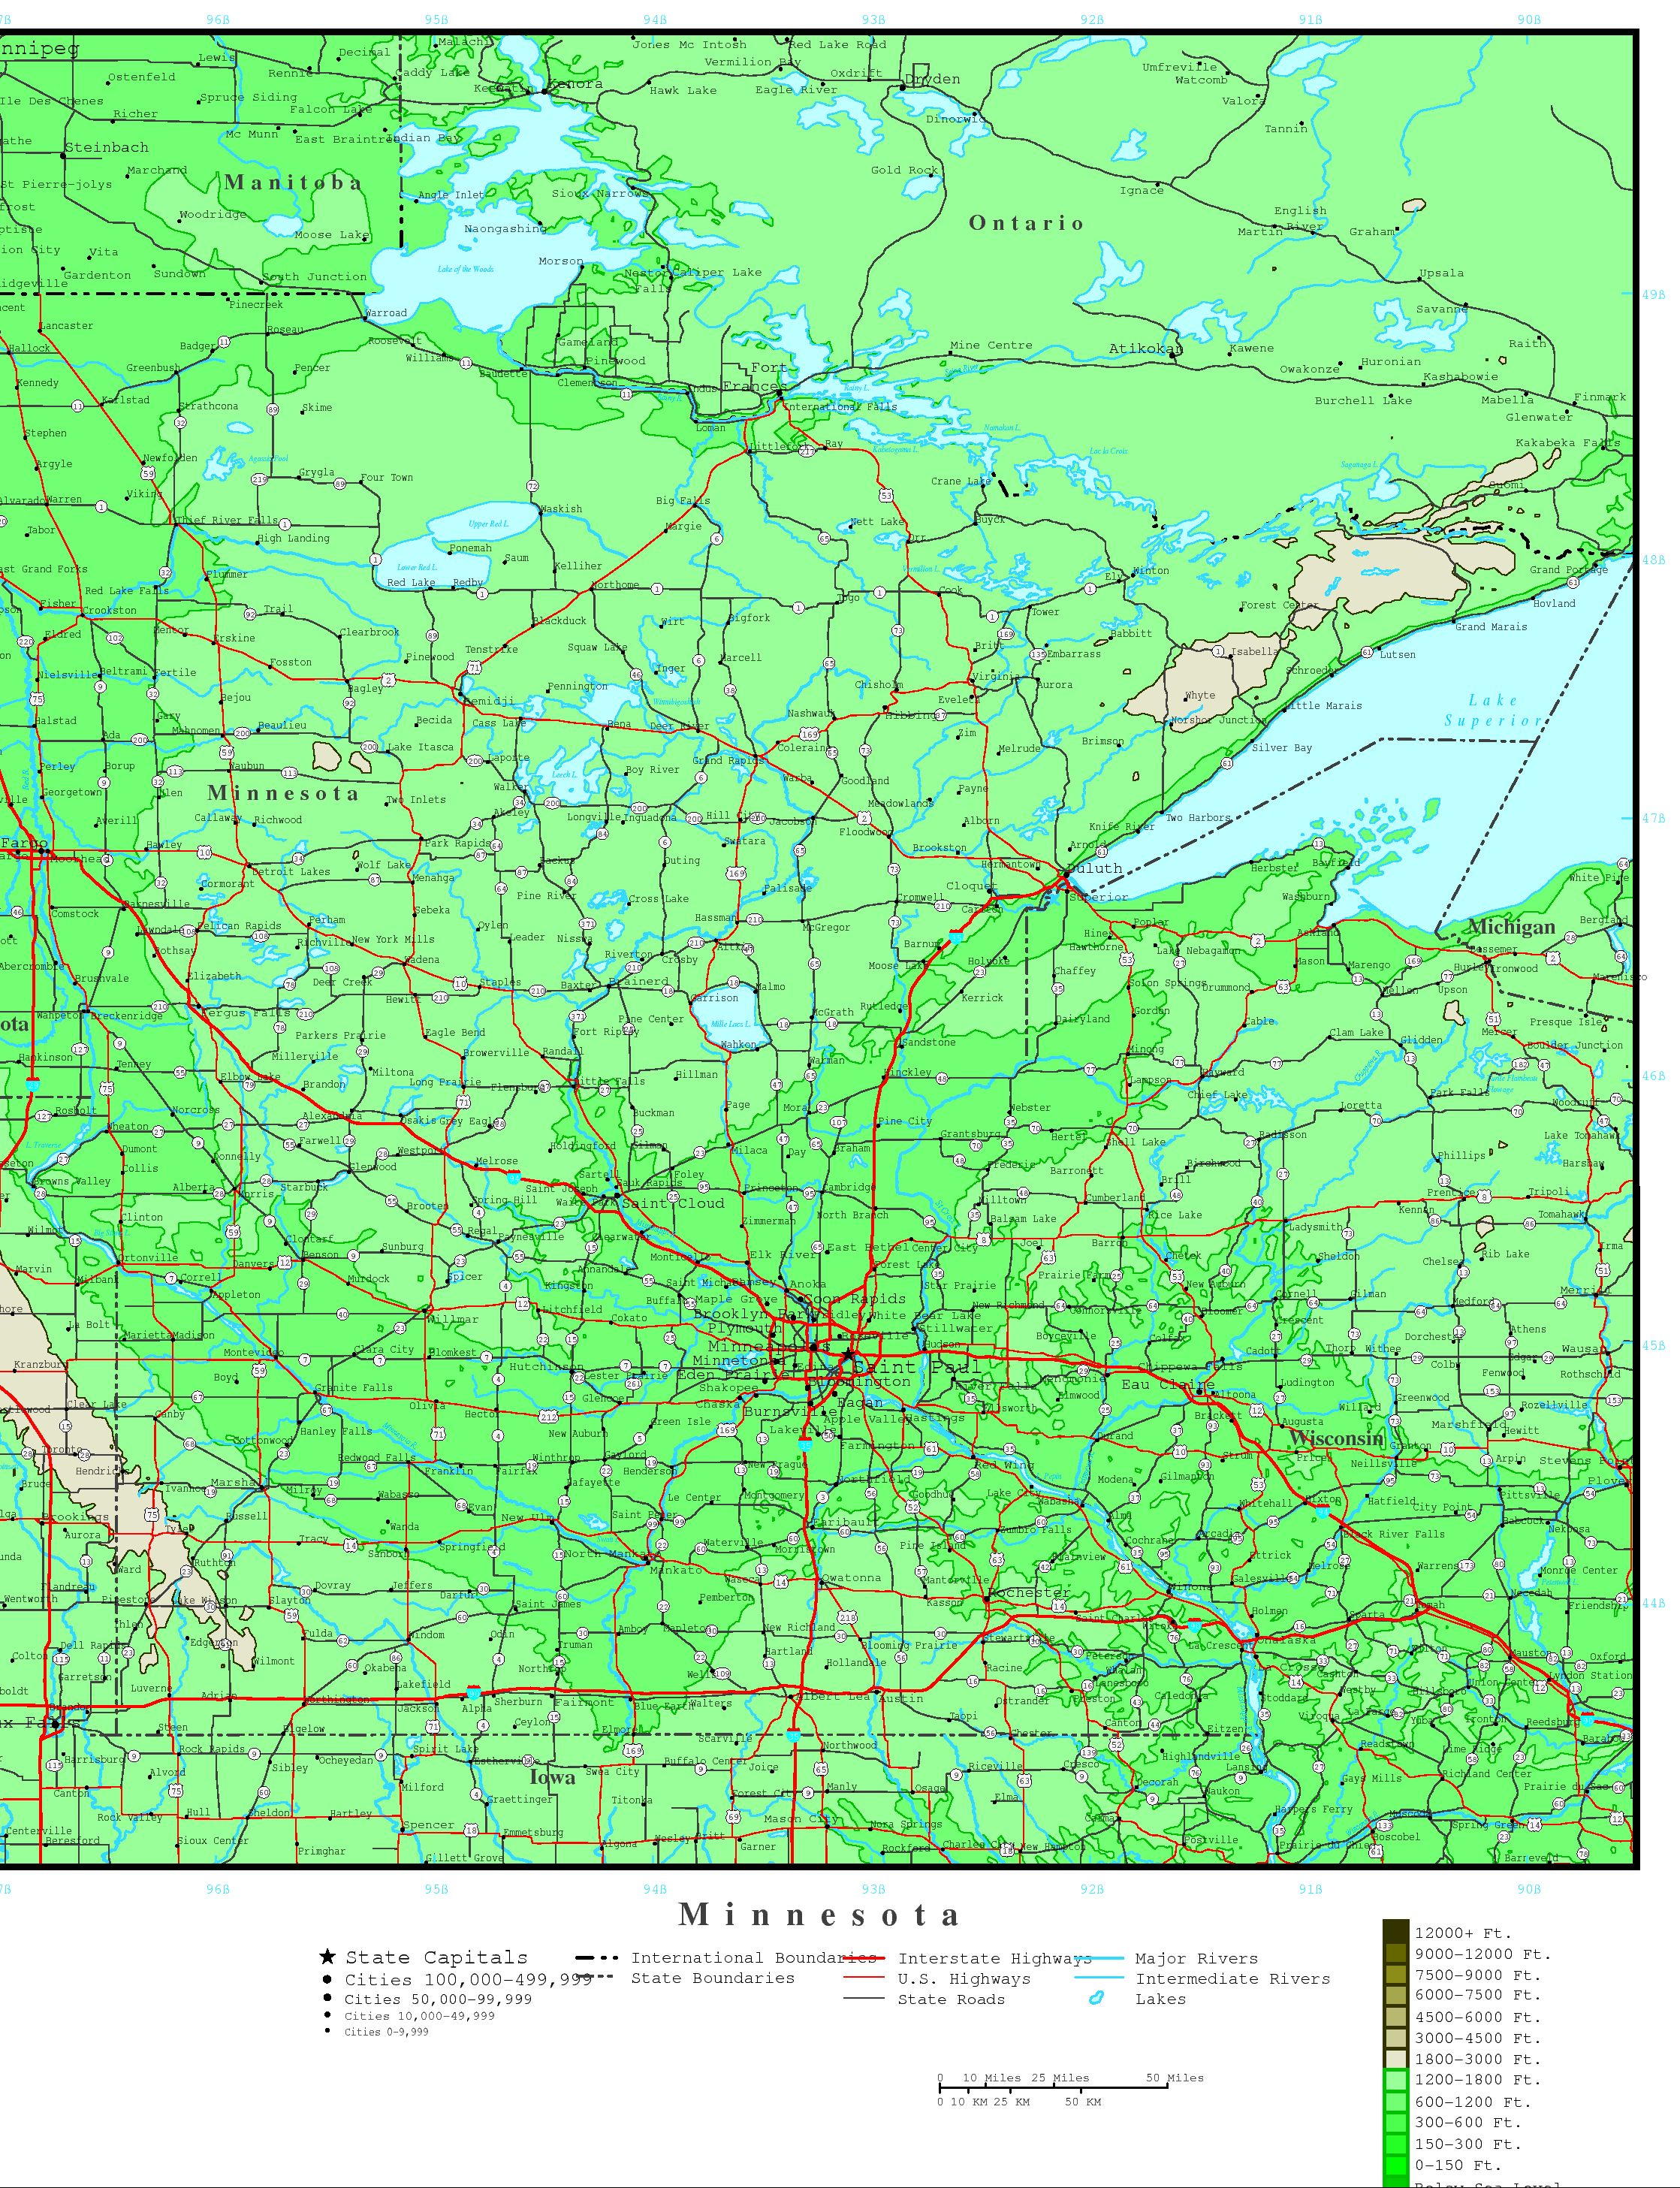 Minnesota Political Map - Political map of minnesota